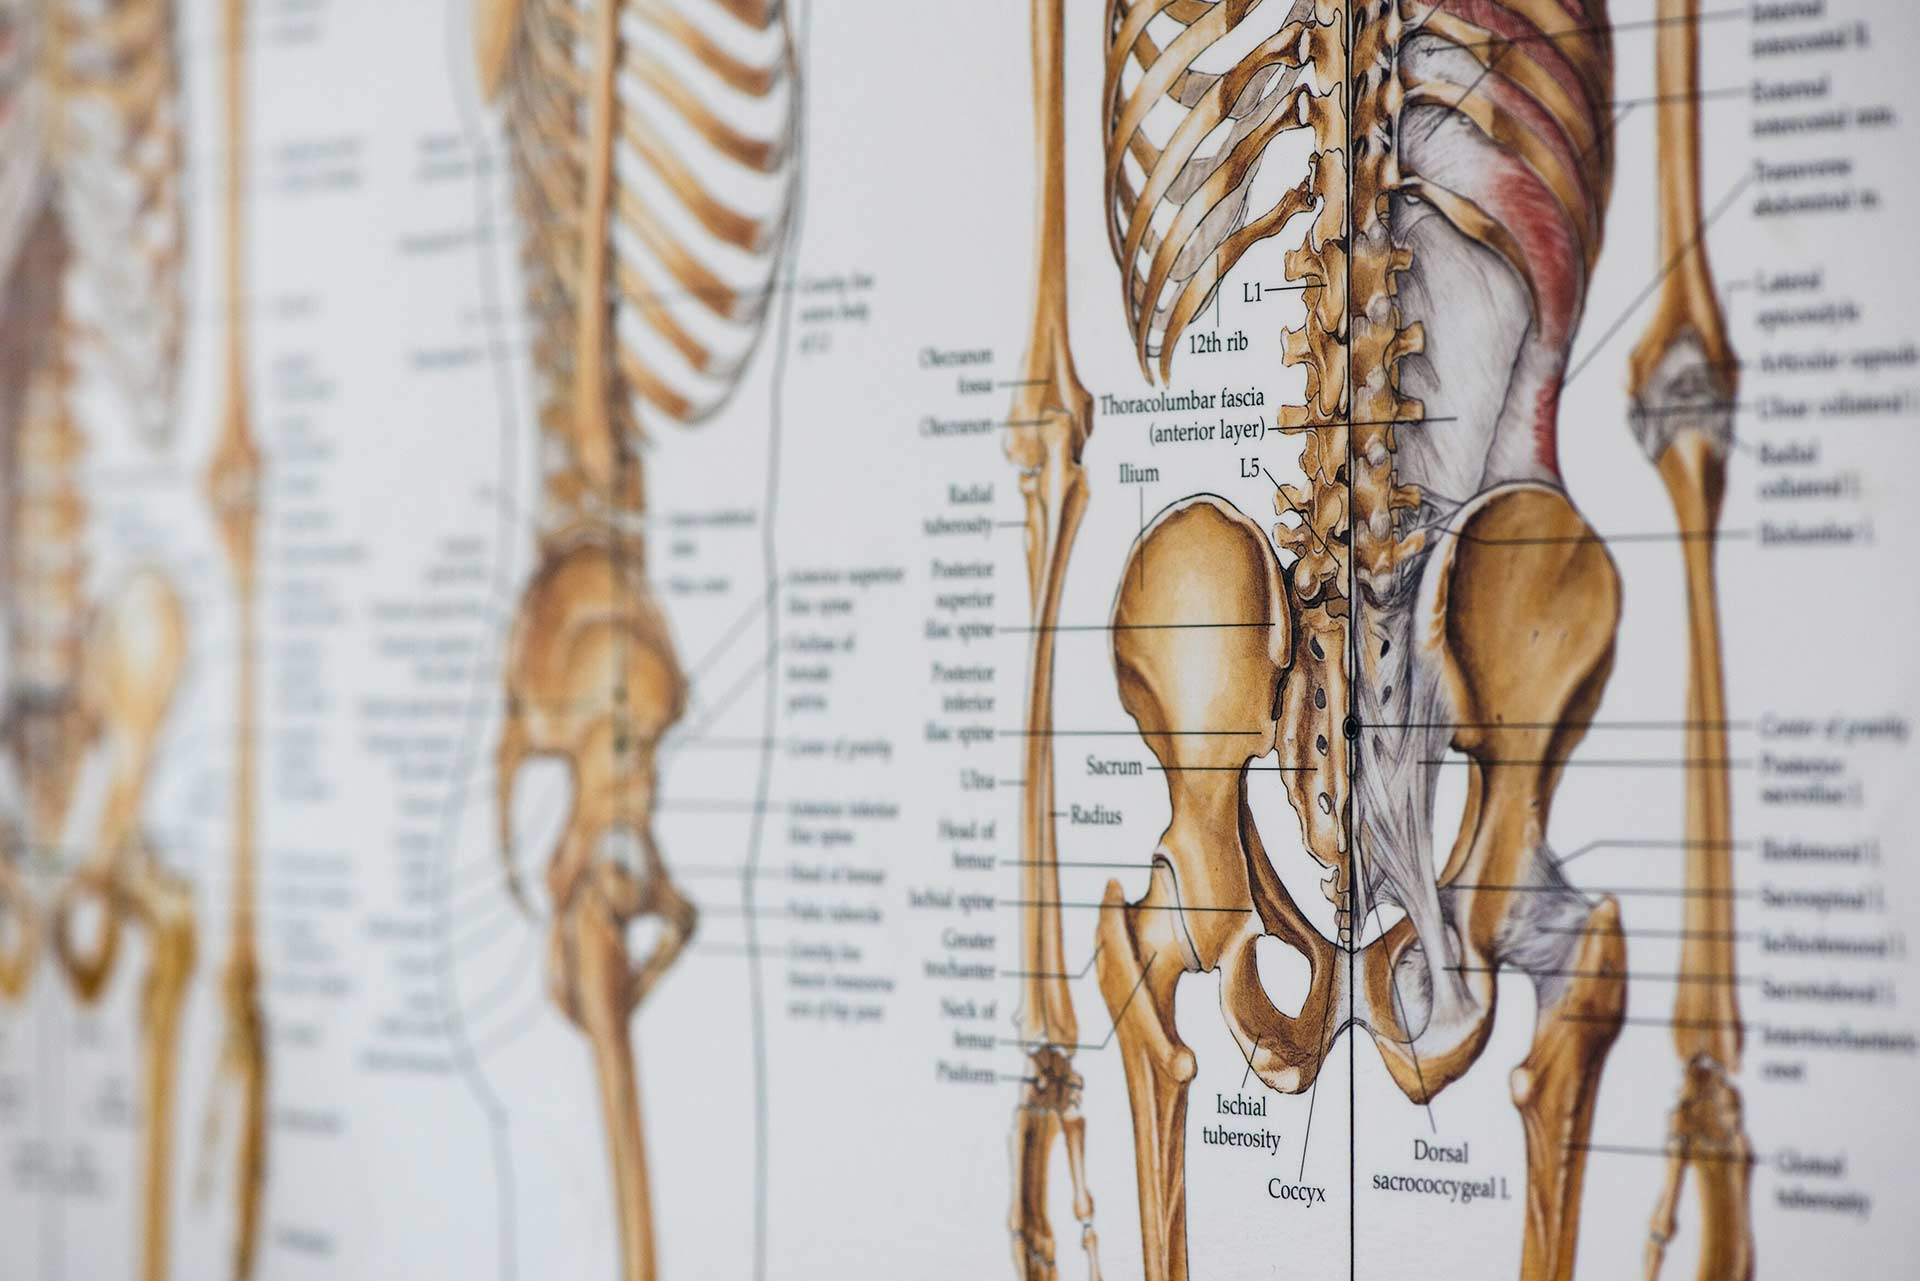 Natural Low Back Pain Treatment In Ballard Chiropractic